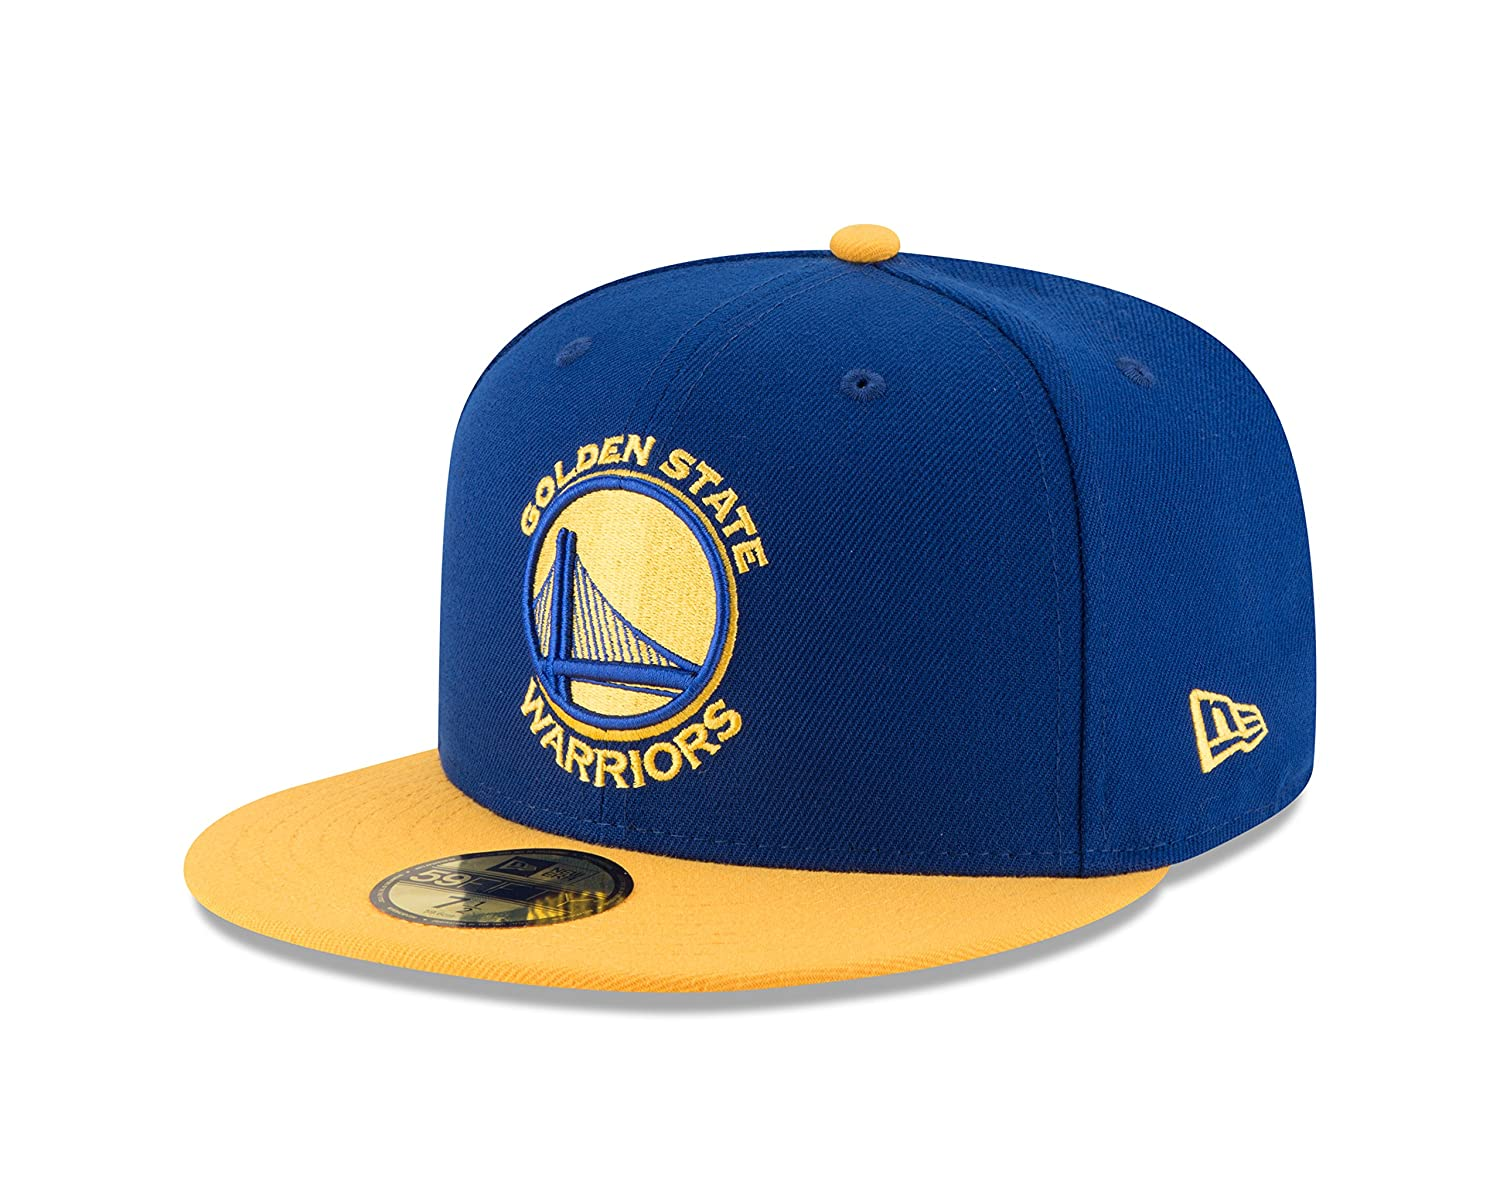 size 40 72942 b76f5 New Era Mens NBA 2Tone 59FIFTY Fitted Cap STOCK-NBA-2TONE 5950   Amazon.com.au  Sports, Fitness   Outdoors